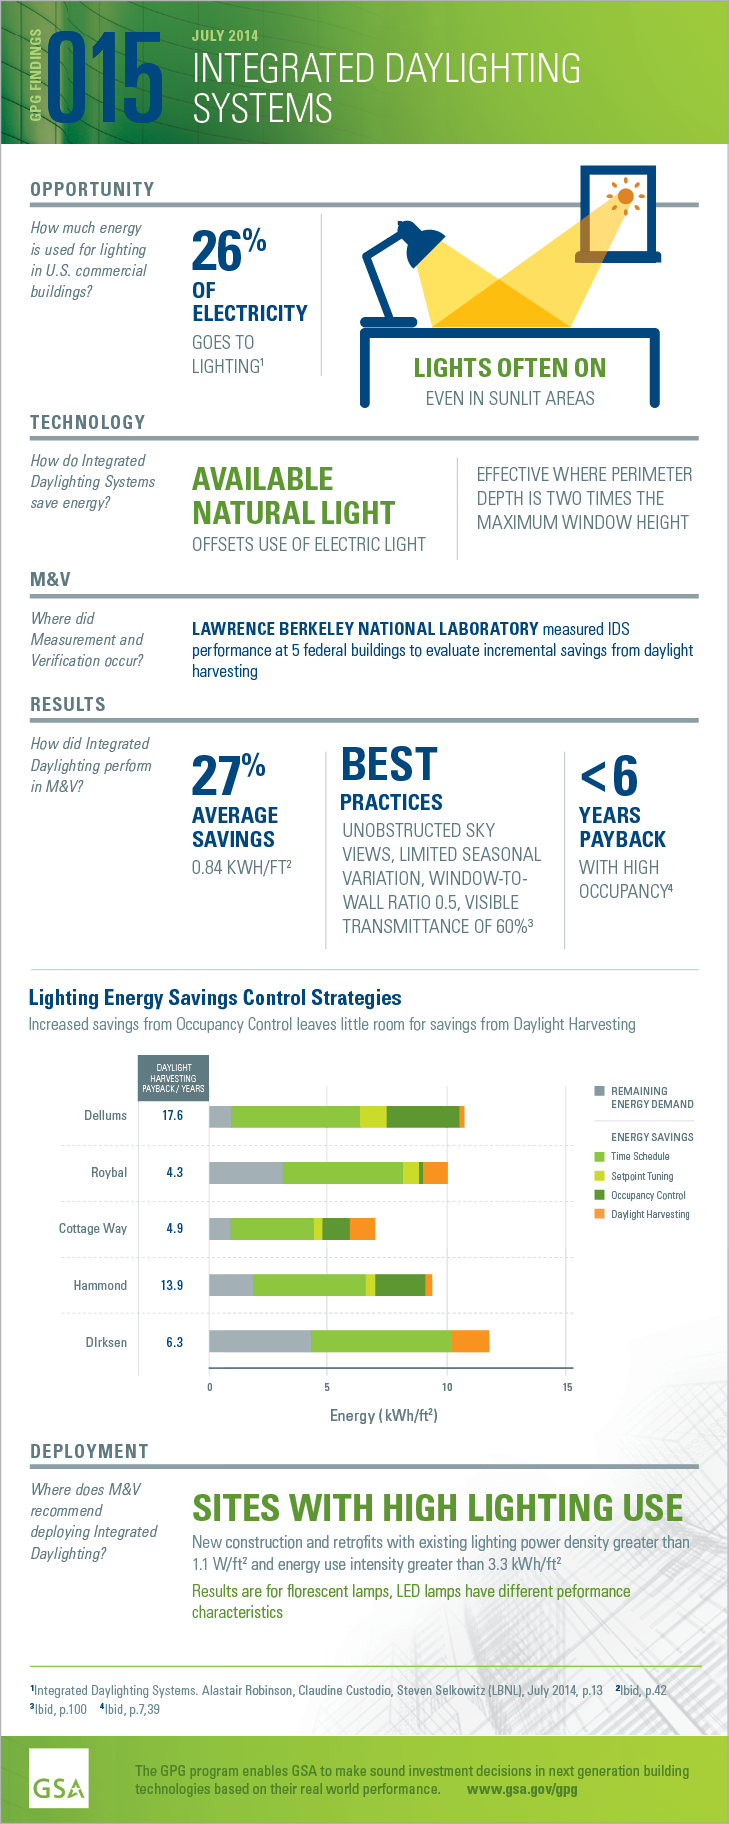 GPG Findings 015, July 2014, Integrated Daylighting Systems. Opportunity: How much energy is used for lighting in U.S. commercial buildings? 26% of electricity goes to lighting. Lights often on even in sunlit areas. Technology: How do Integrated Daylighting Systems save energy? Available natural light offsets use of electric light. Effective where perimeter depth is two times the maximum window height. Measurement and Verification. Where did M and V occur? Lawrence Berkeley National Laboratory measured IDS performance at 5 federal buildings to evaluate incremental savings from daylight harvesting. Results: How did Integrated Daylighting perform in M and V? 27% average savings 0.84 kWh/ft2. Best practices: unobstructed sky views, limited seasonal variation, window-to-wall ratio 0.5, visible transmittance of 60%. Less than 6 years payback with high occupancy. Deployment: Where does M and V recommend deploying Integrated Daylighting? Sites with high lighting use. New construction and retrofits with existing lighting power density greater than 1.1 W/ft2 and energy intensity greater than 3.3 kWh/ft2. Results are for fluorescent lamps, LED lamps have different performance characteristics.